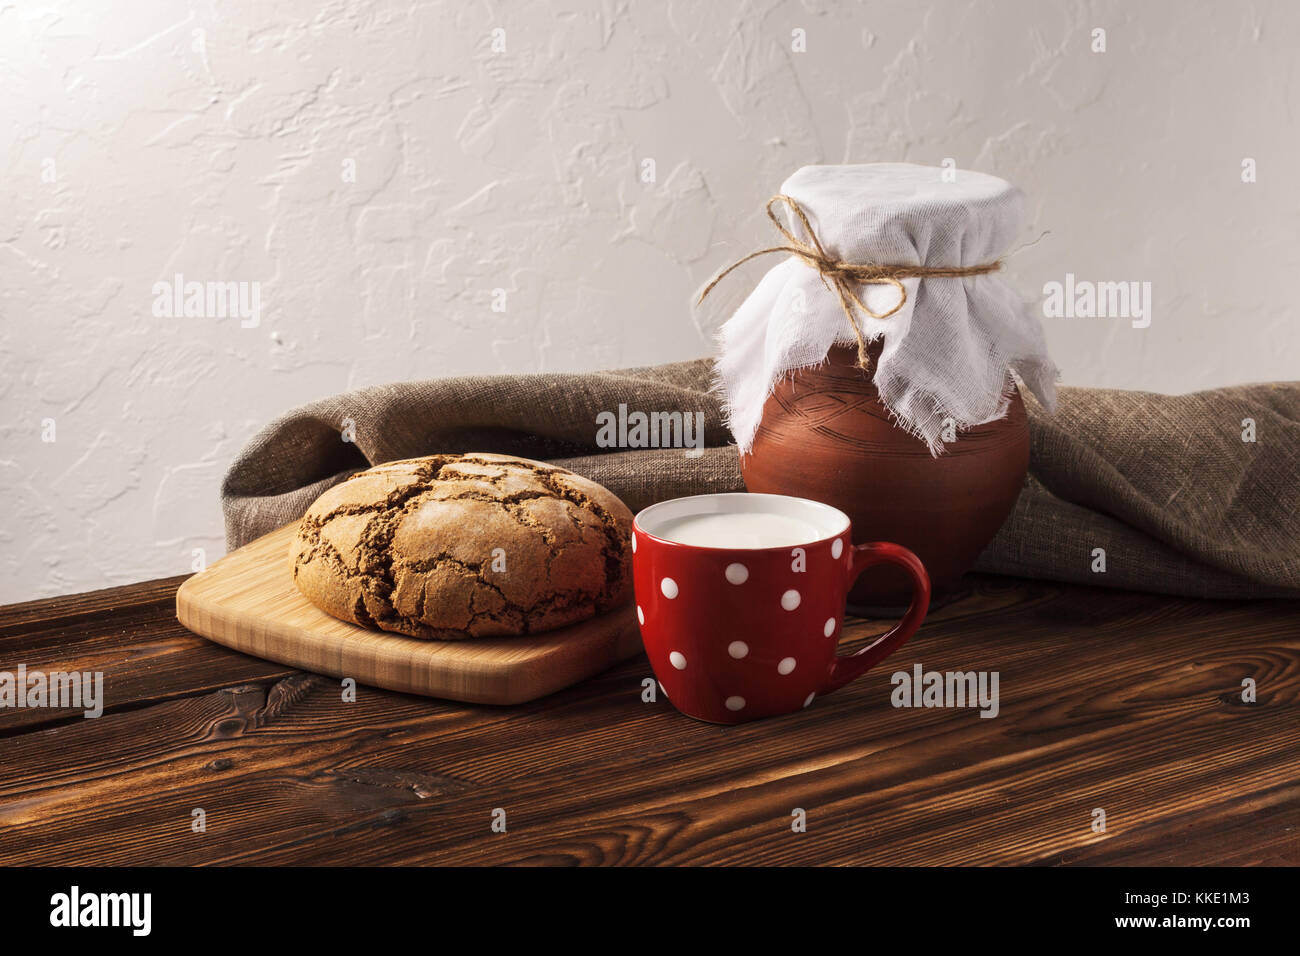 Russian hygge breakfast - Stock Image